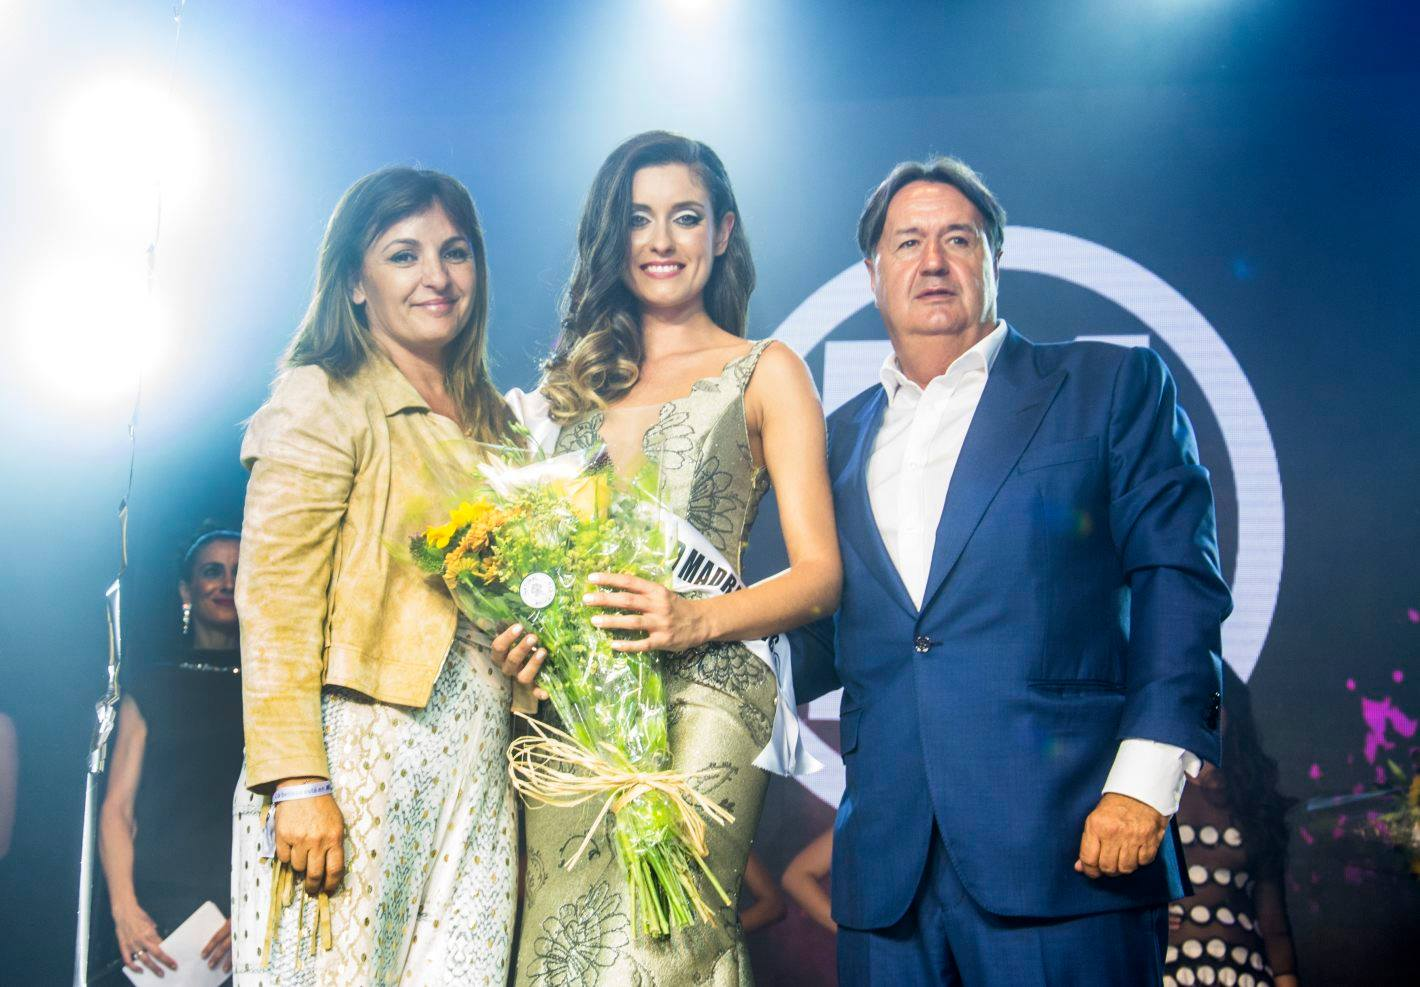 Miss_World_Madrid_Spain_Clinica_Menorca (2)